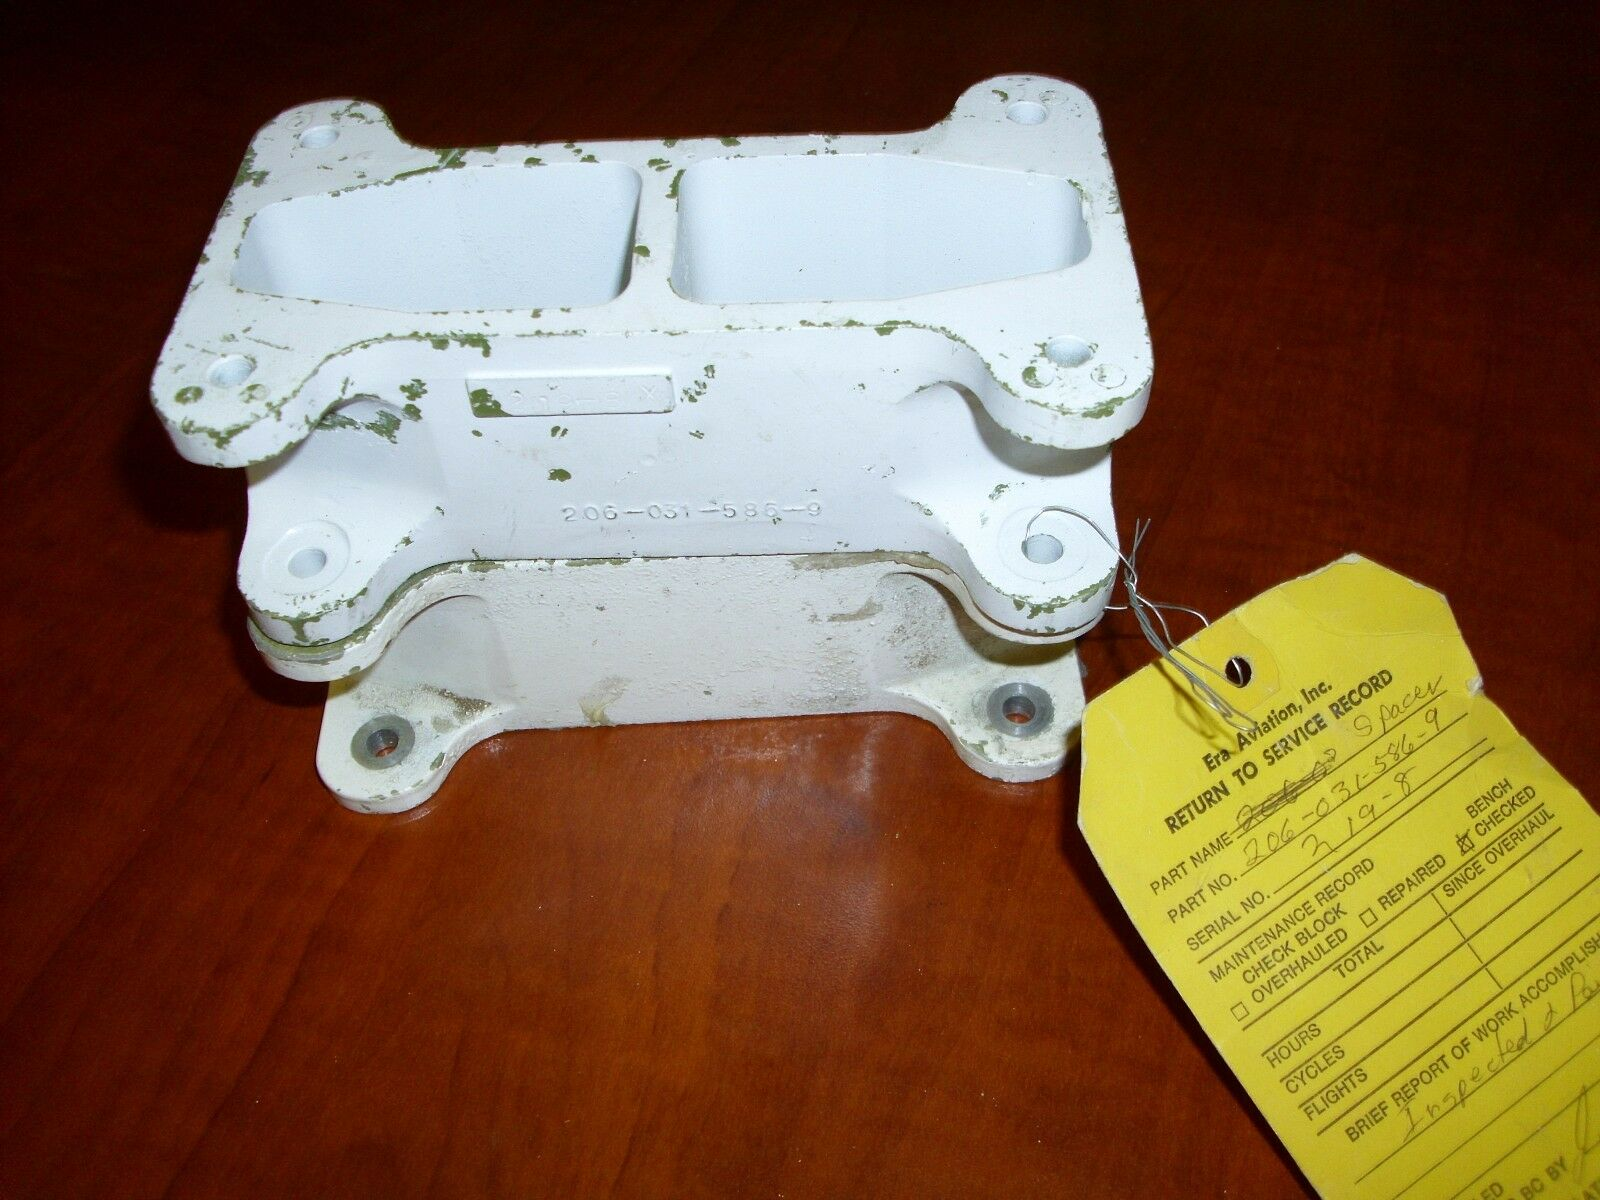 Bell 206 Helicopter Spacer Blocks 206-031-586-009